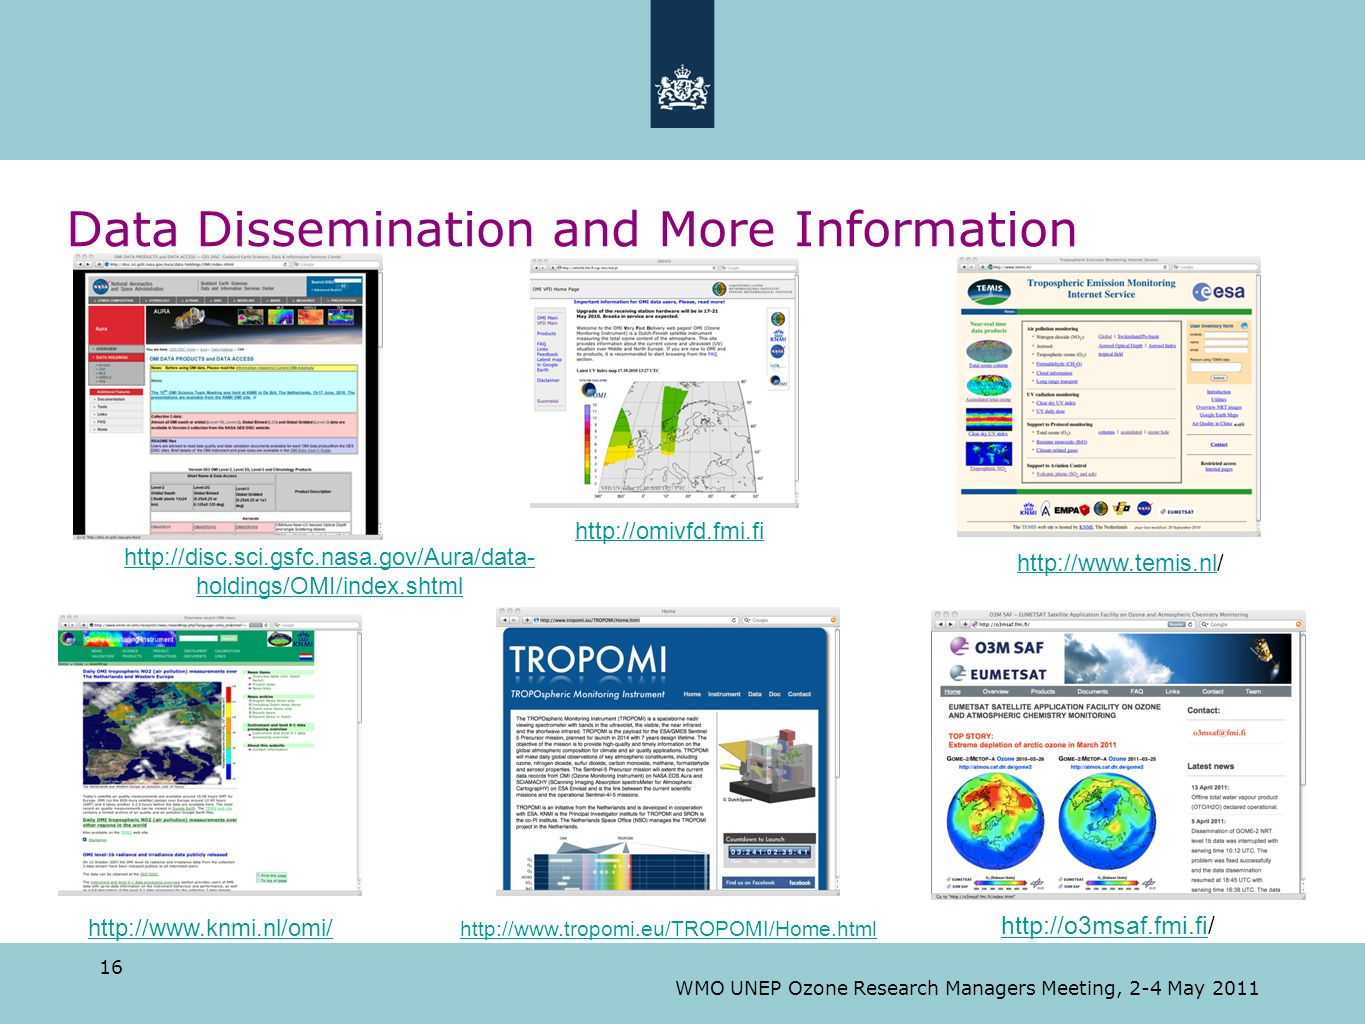 Data Dissemination and More Information